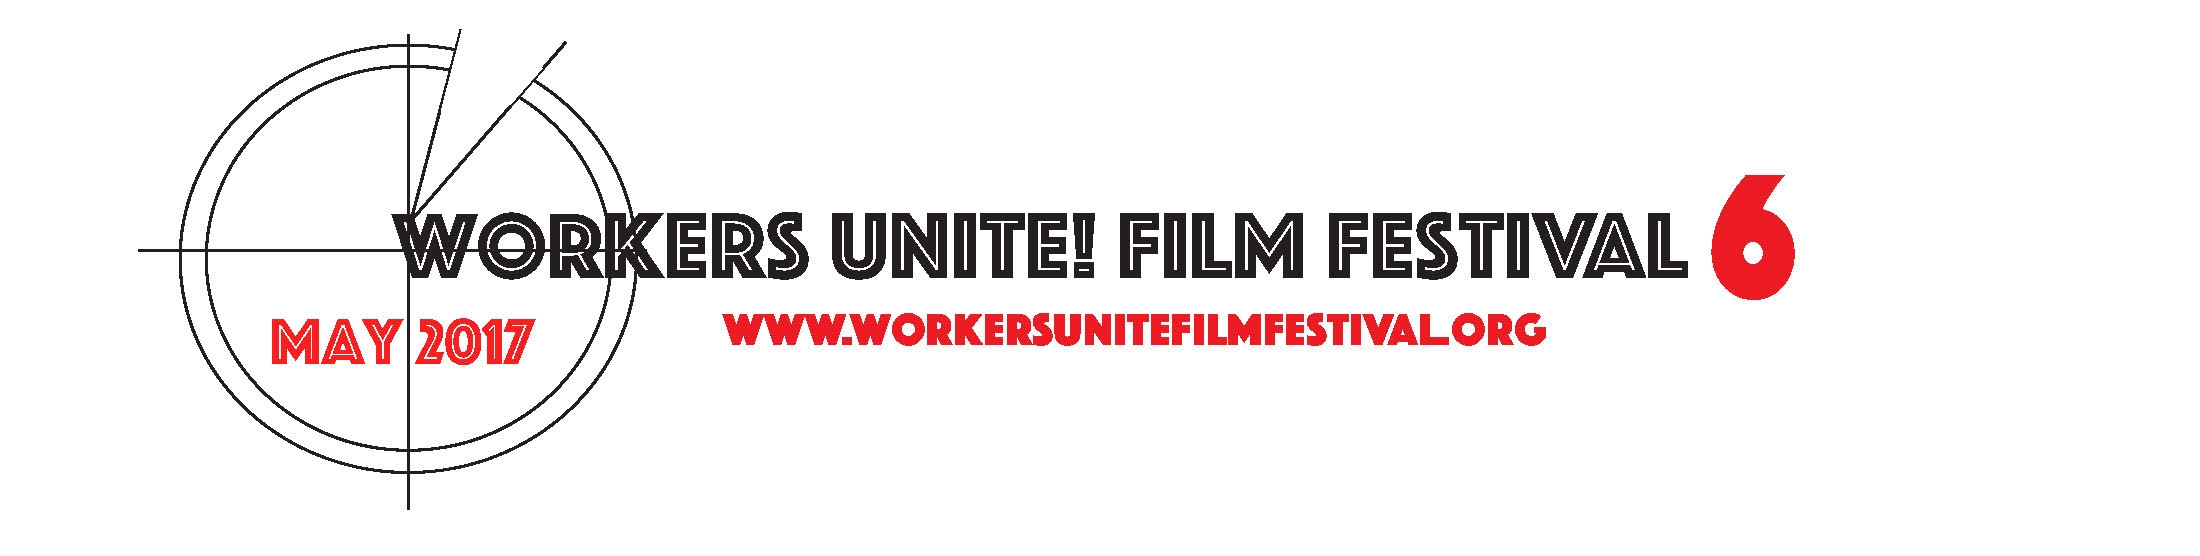 T  he WUFF Team has been hard at work since the Summer of 2016, writing grants, soliciting films and planning for the biggest & best Workers Unite Film Festival yet. It arrives May 5th to May 25th